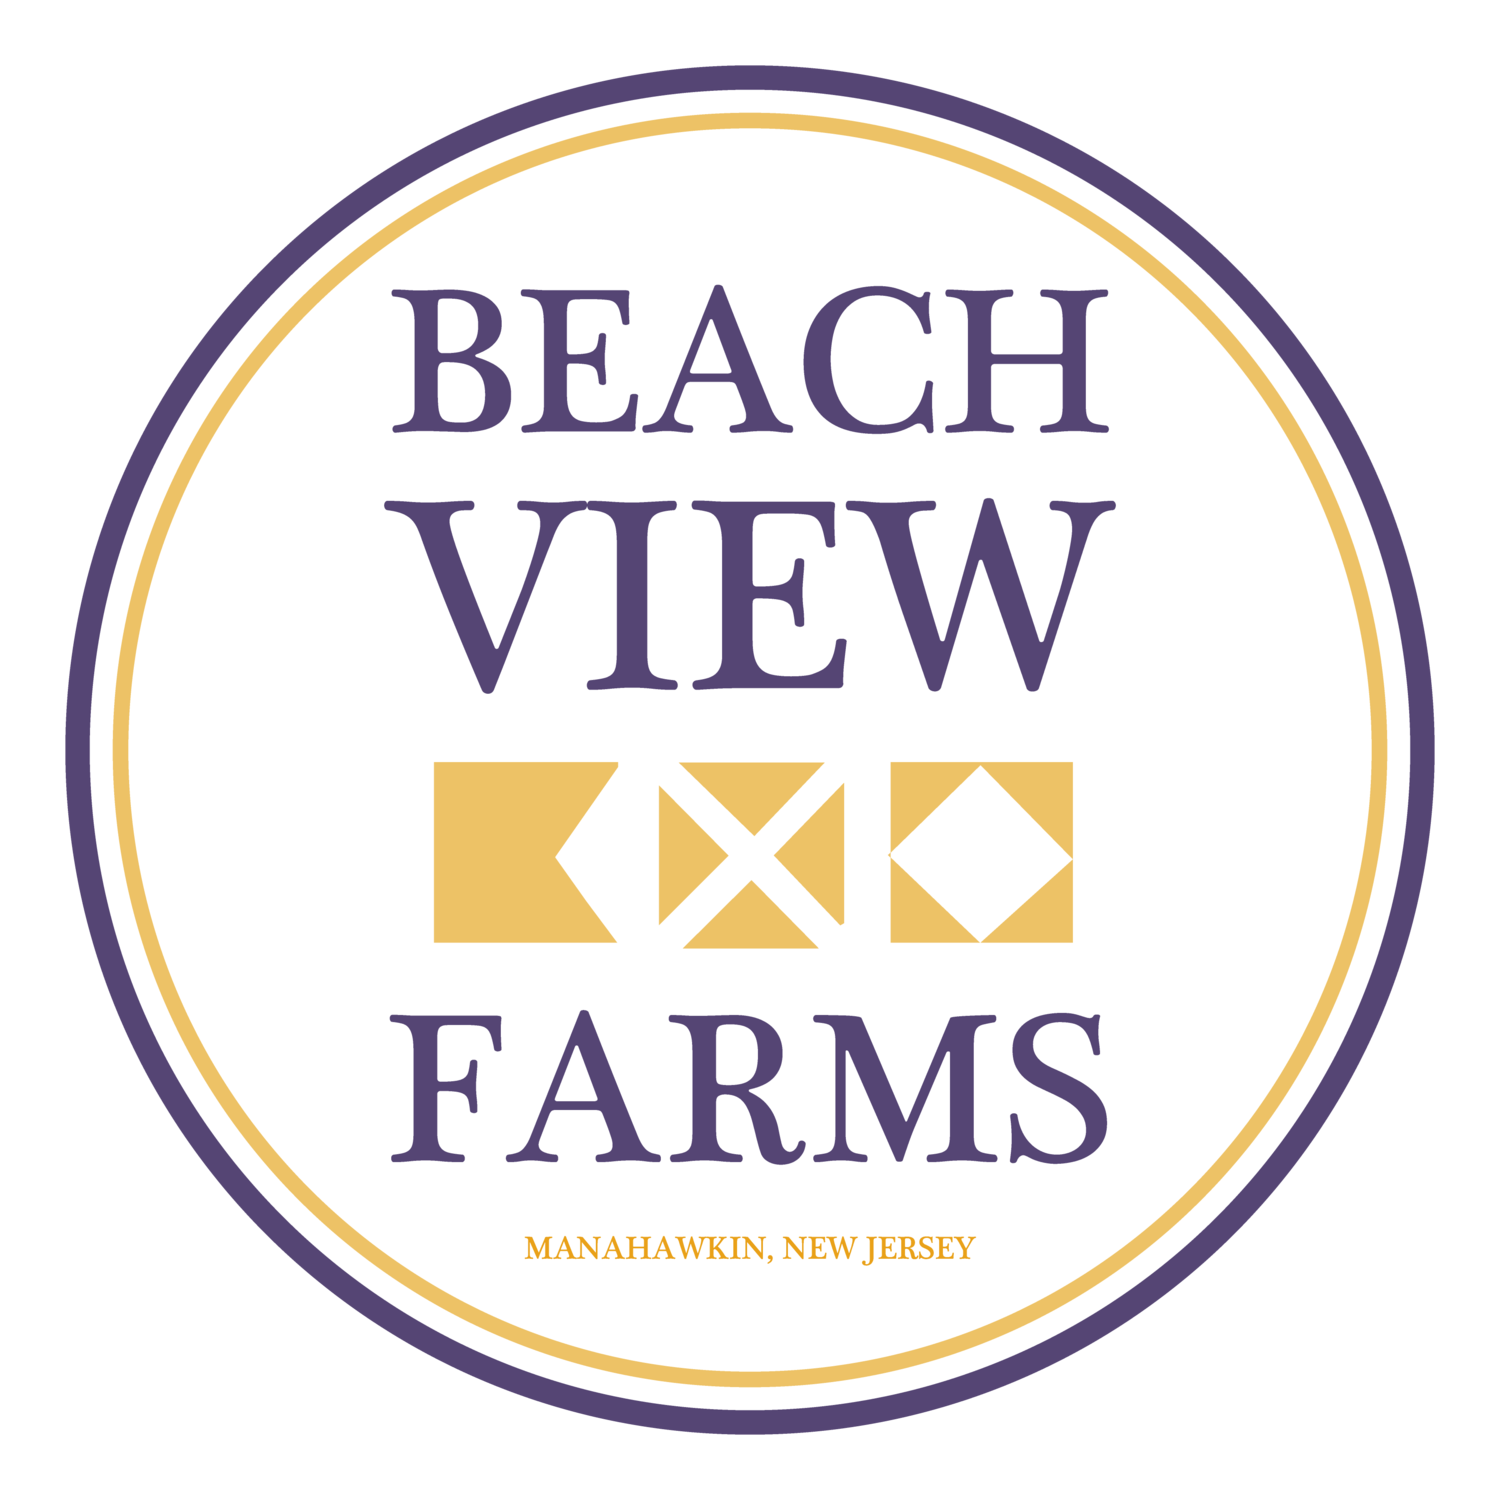 Beach View Farms